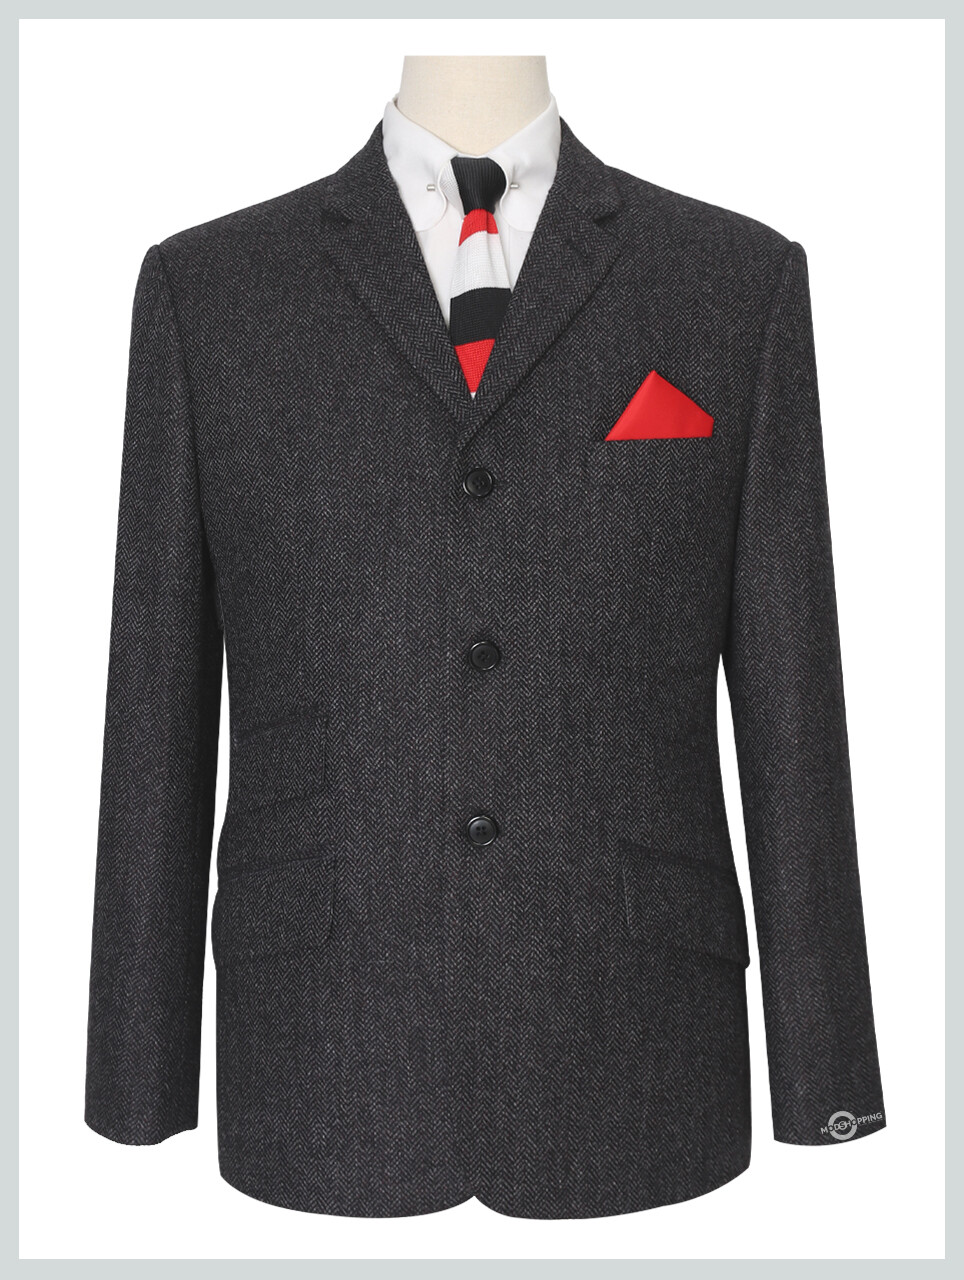 Tweed Charcoal Grey Mod Jacket 3 Button For Men